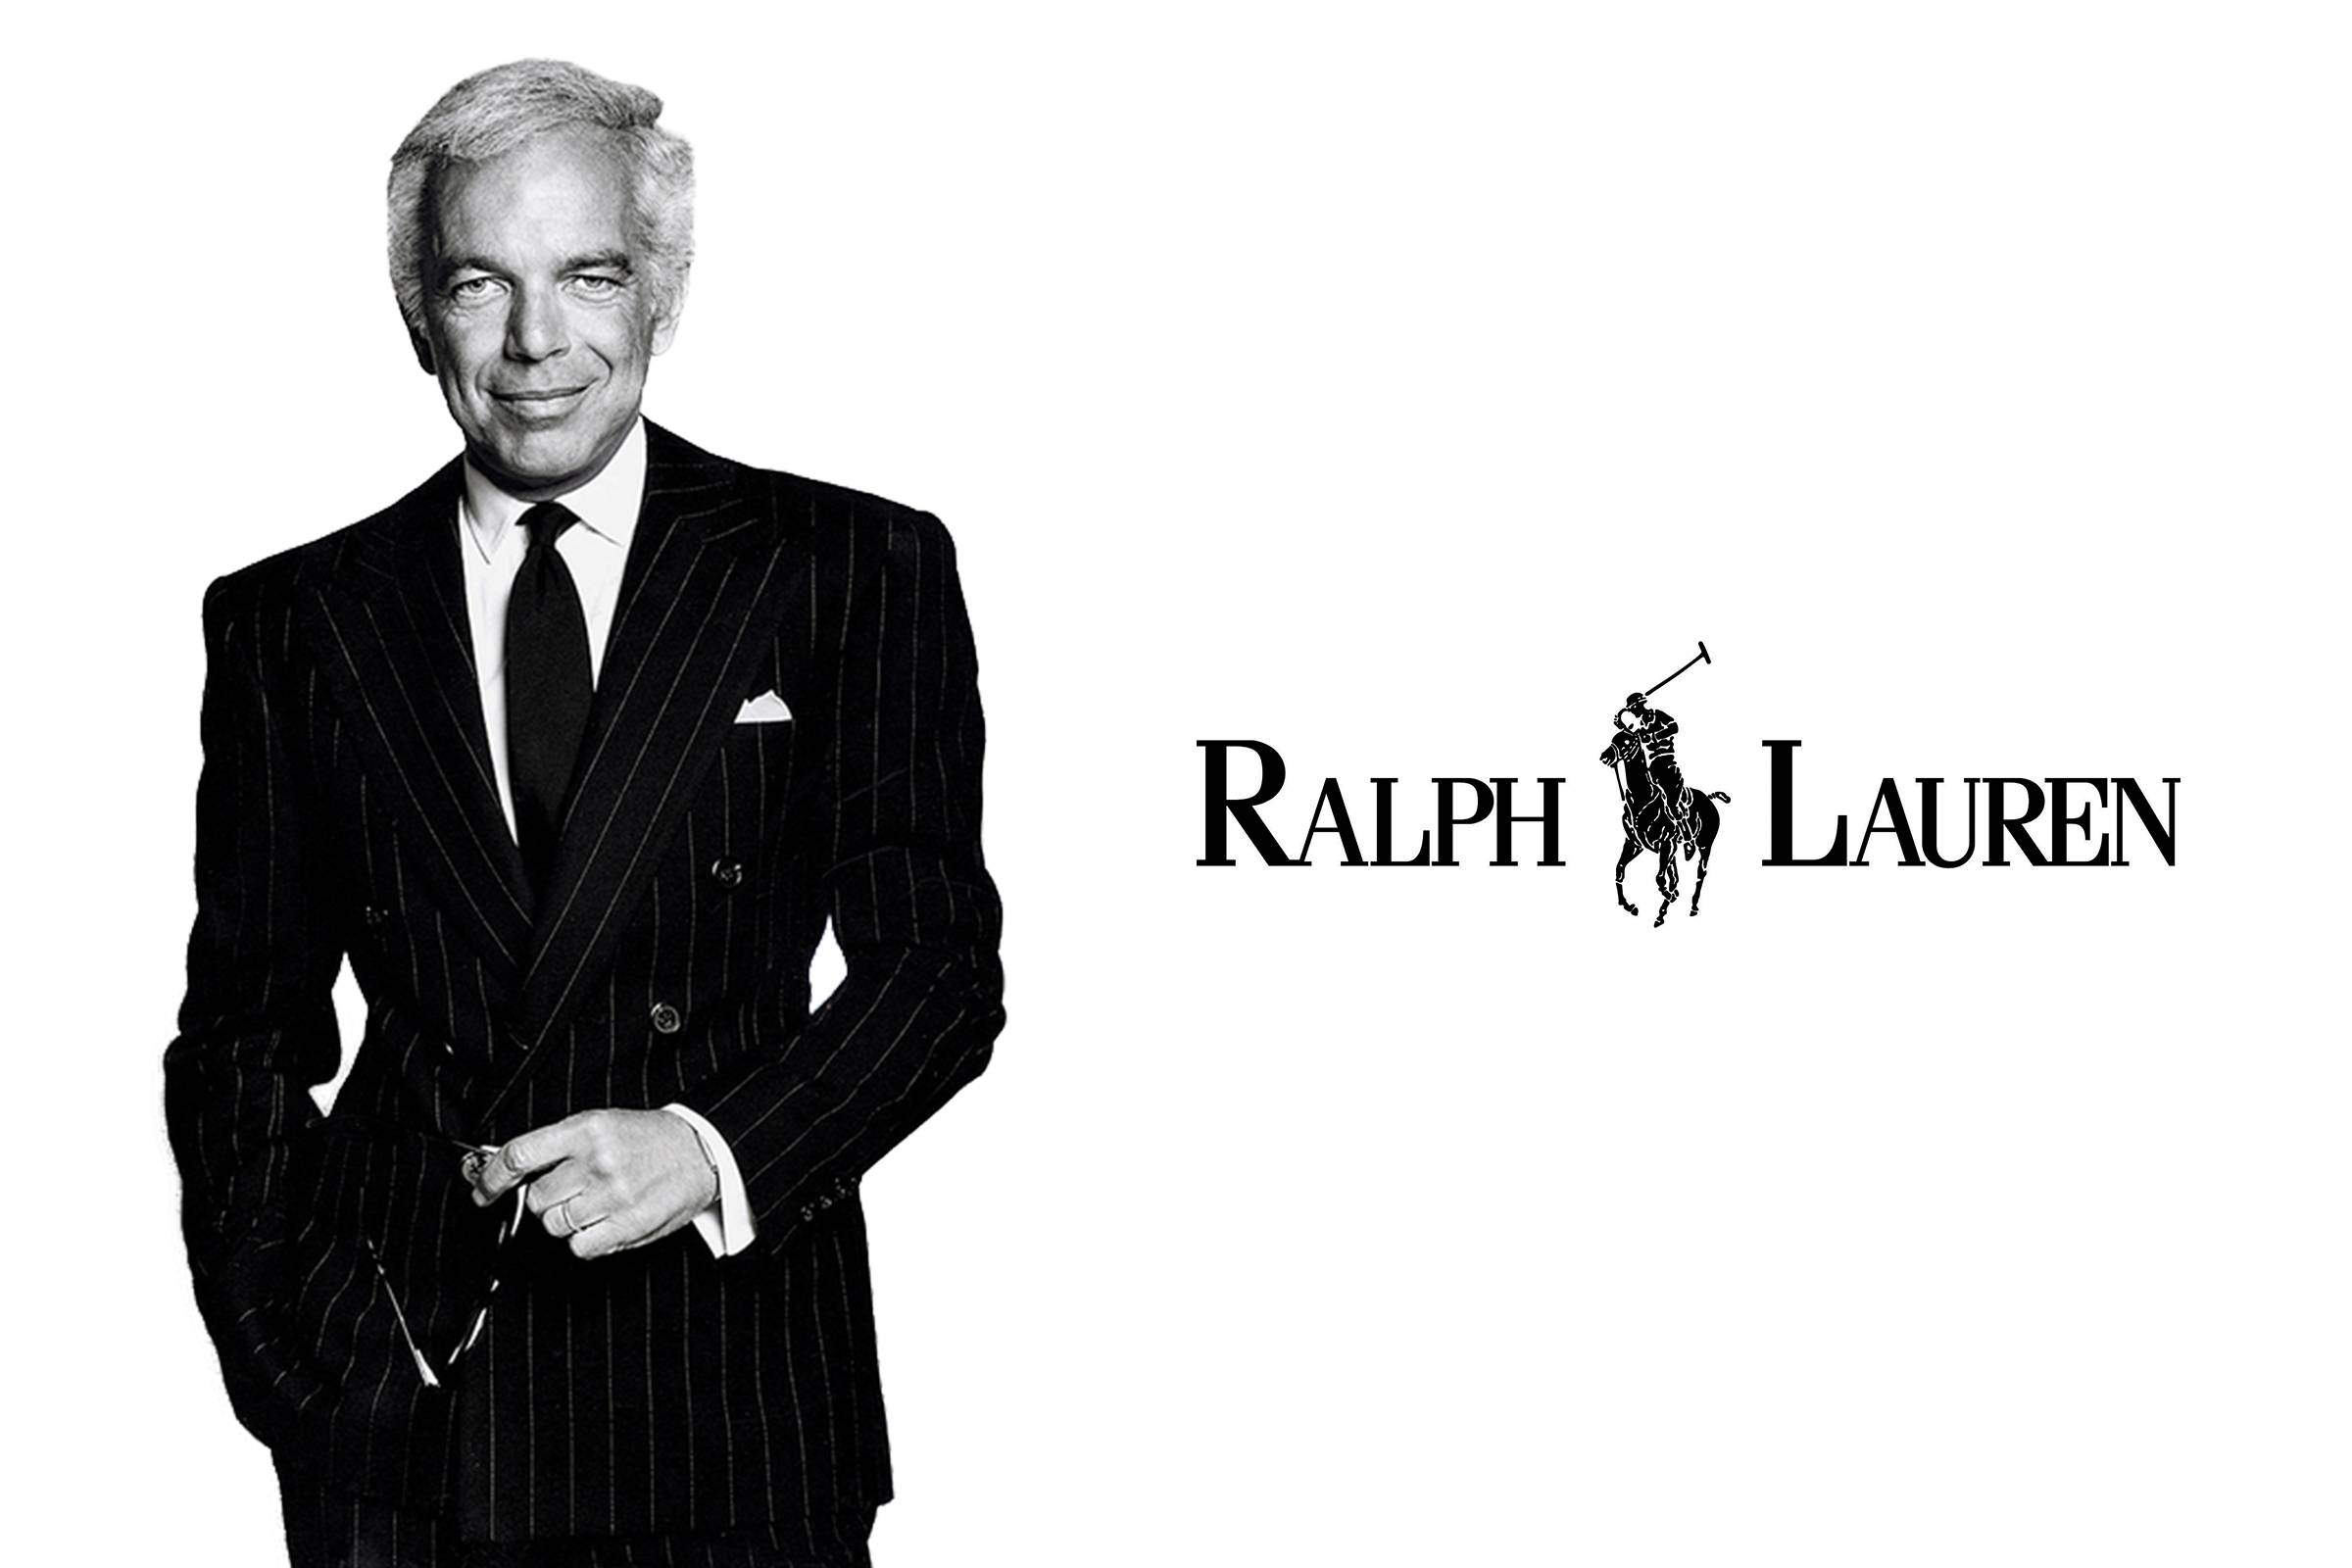 ralph lauren business plan A key part of loomia's business plan is that it is not manufacturing individual pieces of clothing  ralph lauren's self-heating jackets first went on sale for $2,500 and were later auctioned.